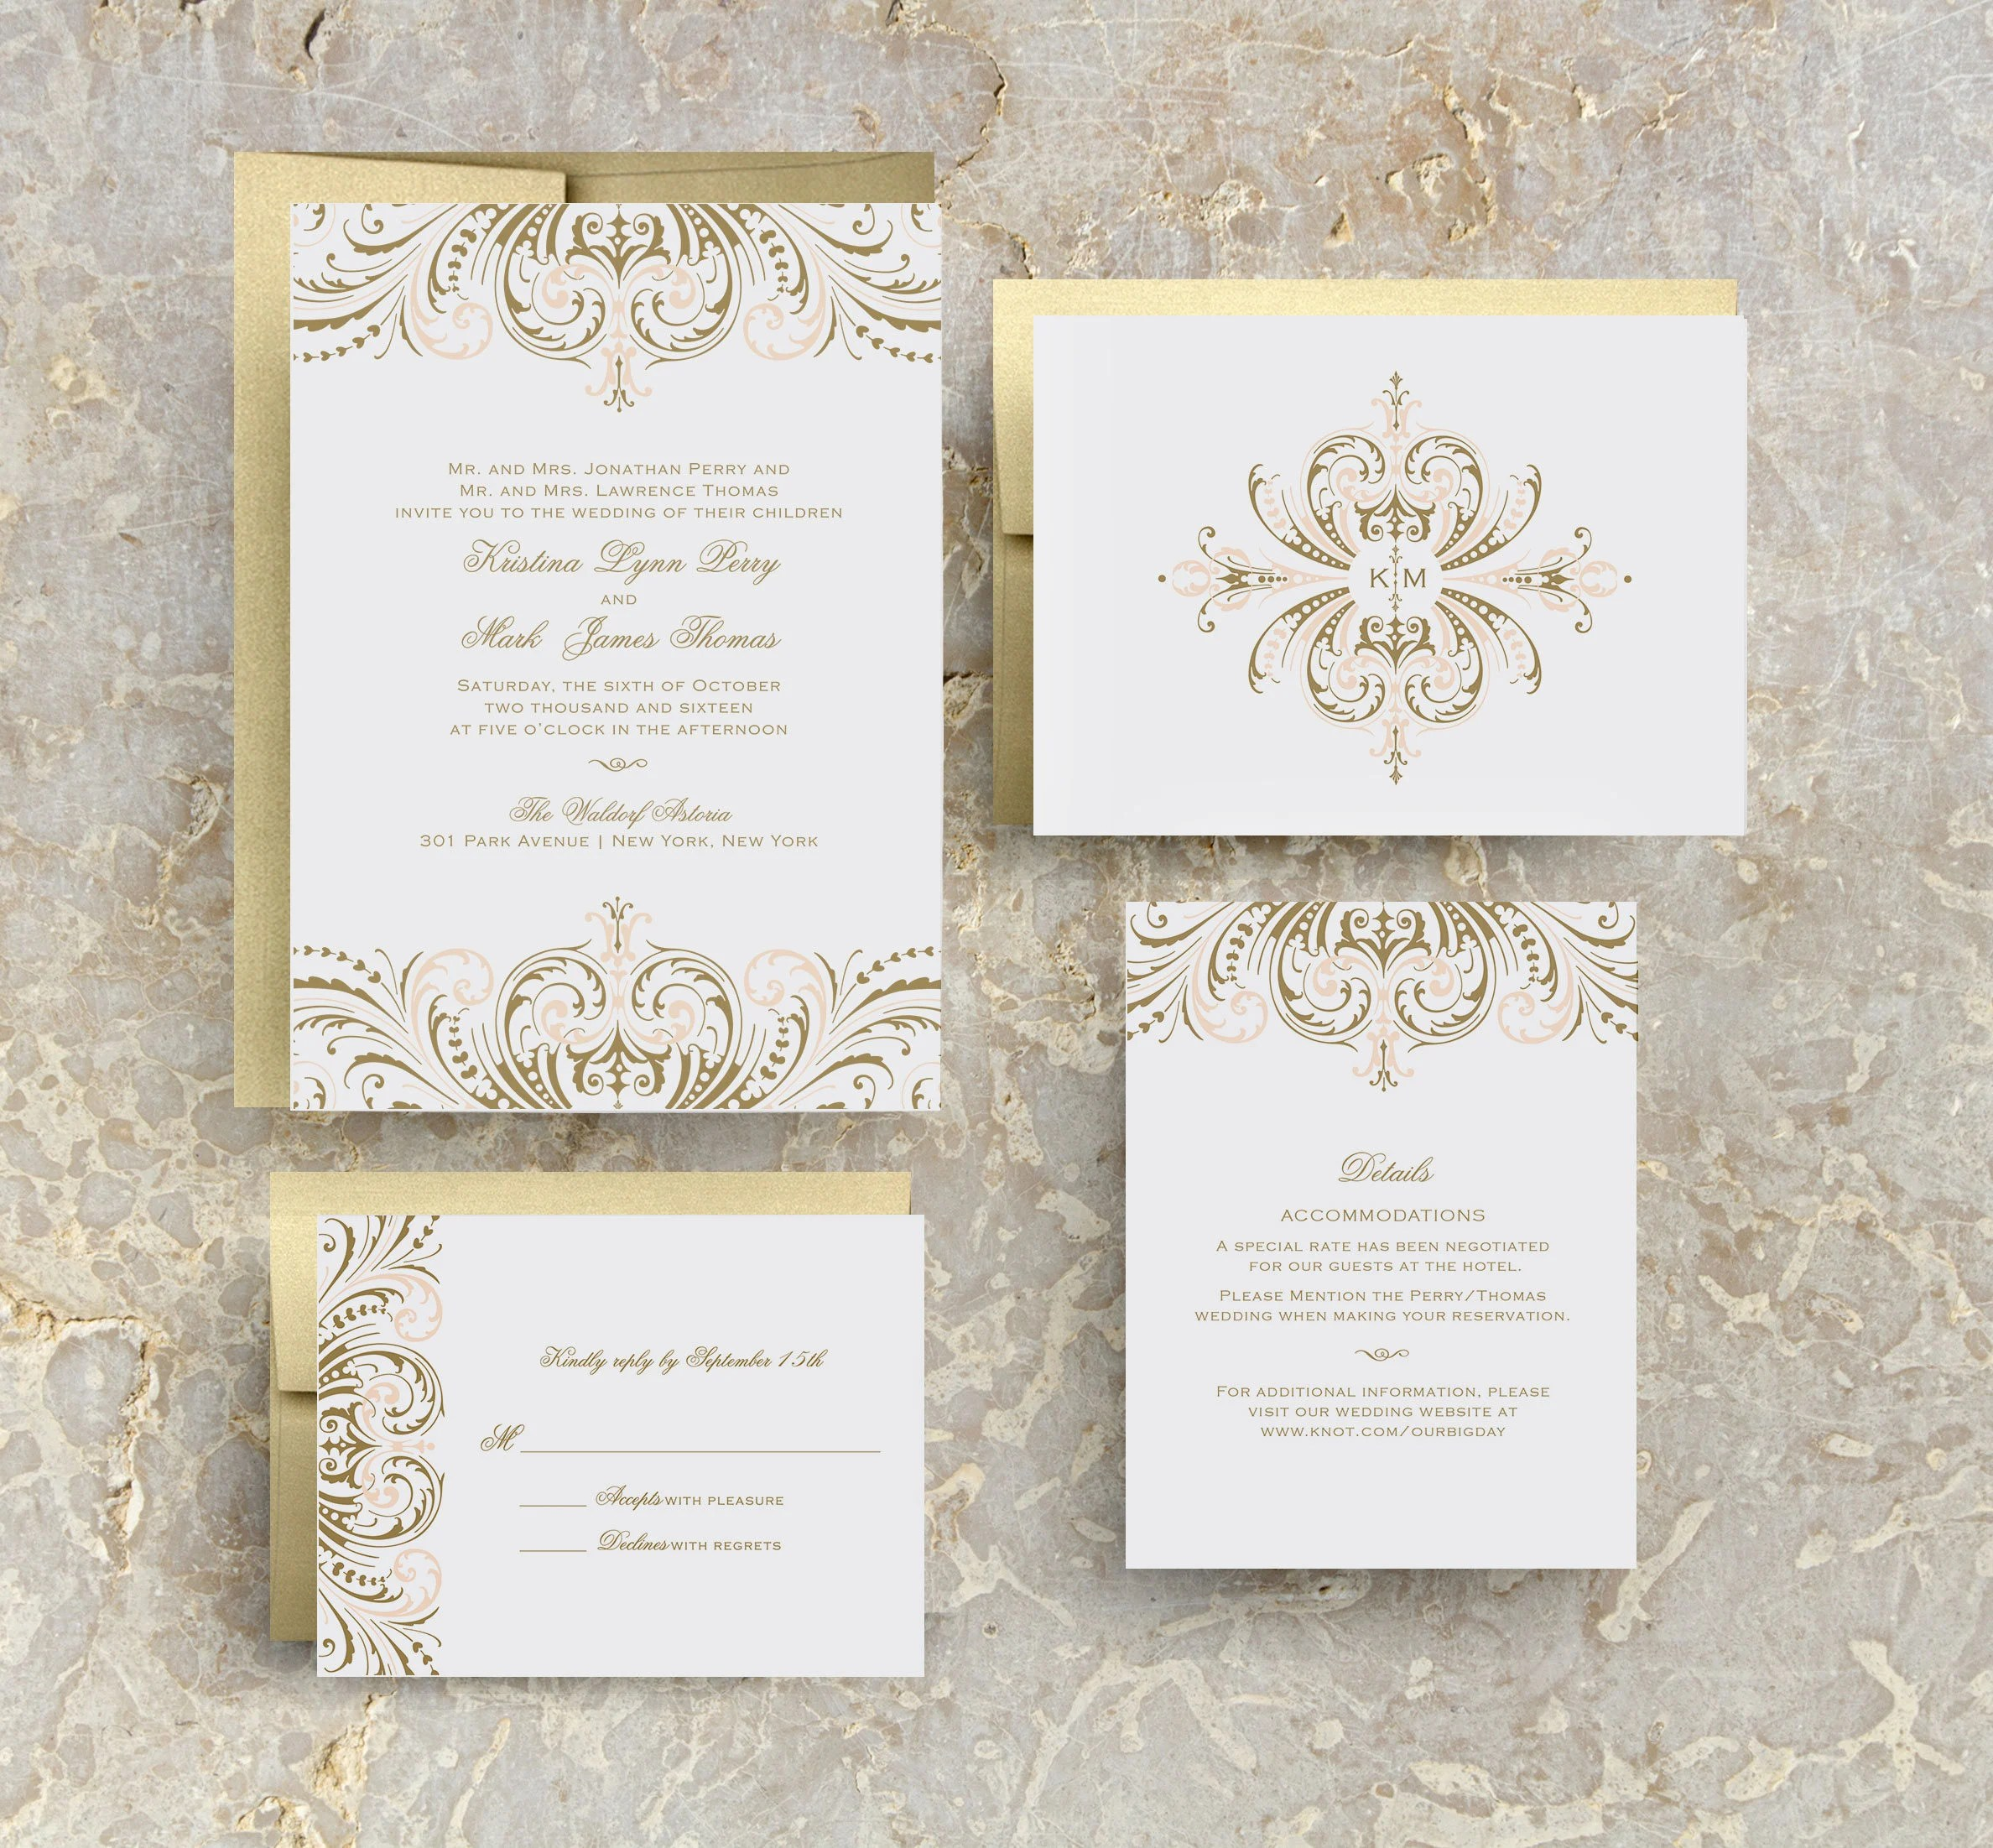 Diy Wedding Invitations With Photo Blush Pink And Gold Wedding Invitations Diy Wedding Invitation Suite Great Gatsby Wedding Invitation Rose Gold Wedding Invitations